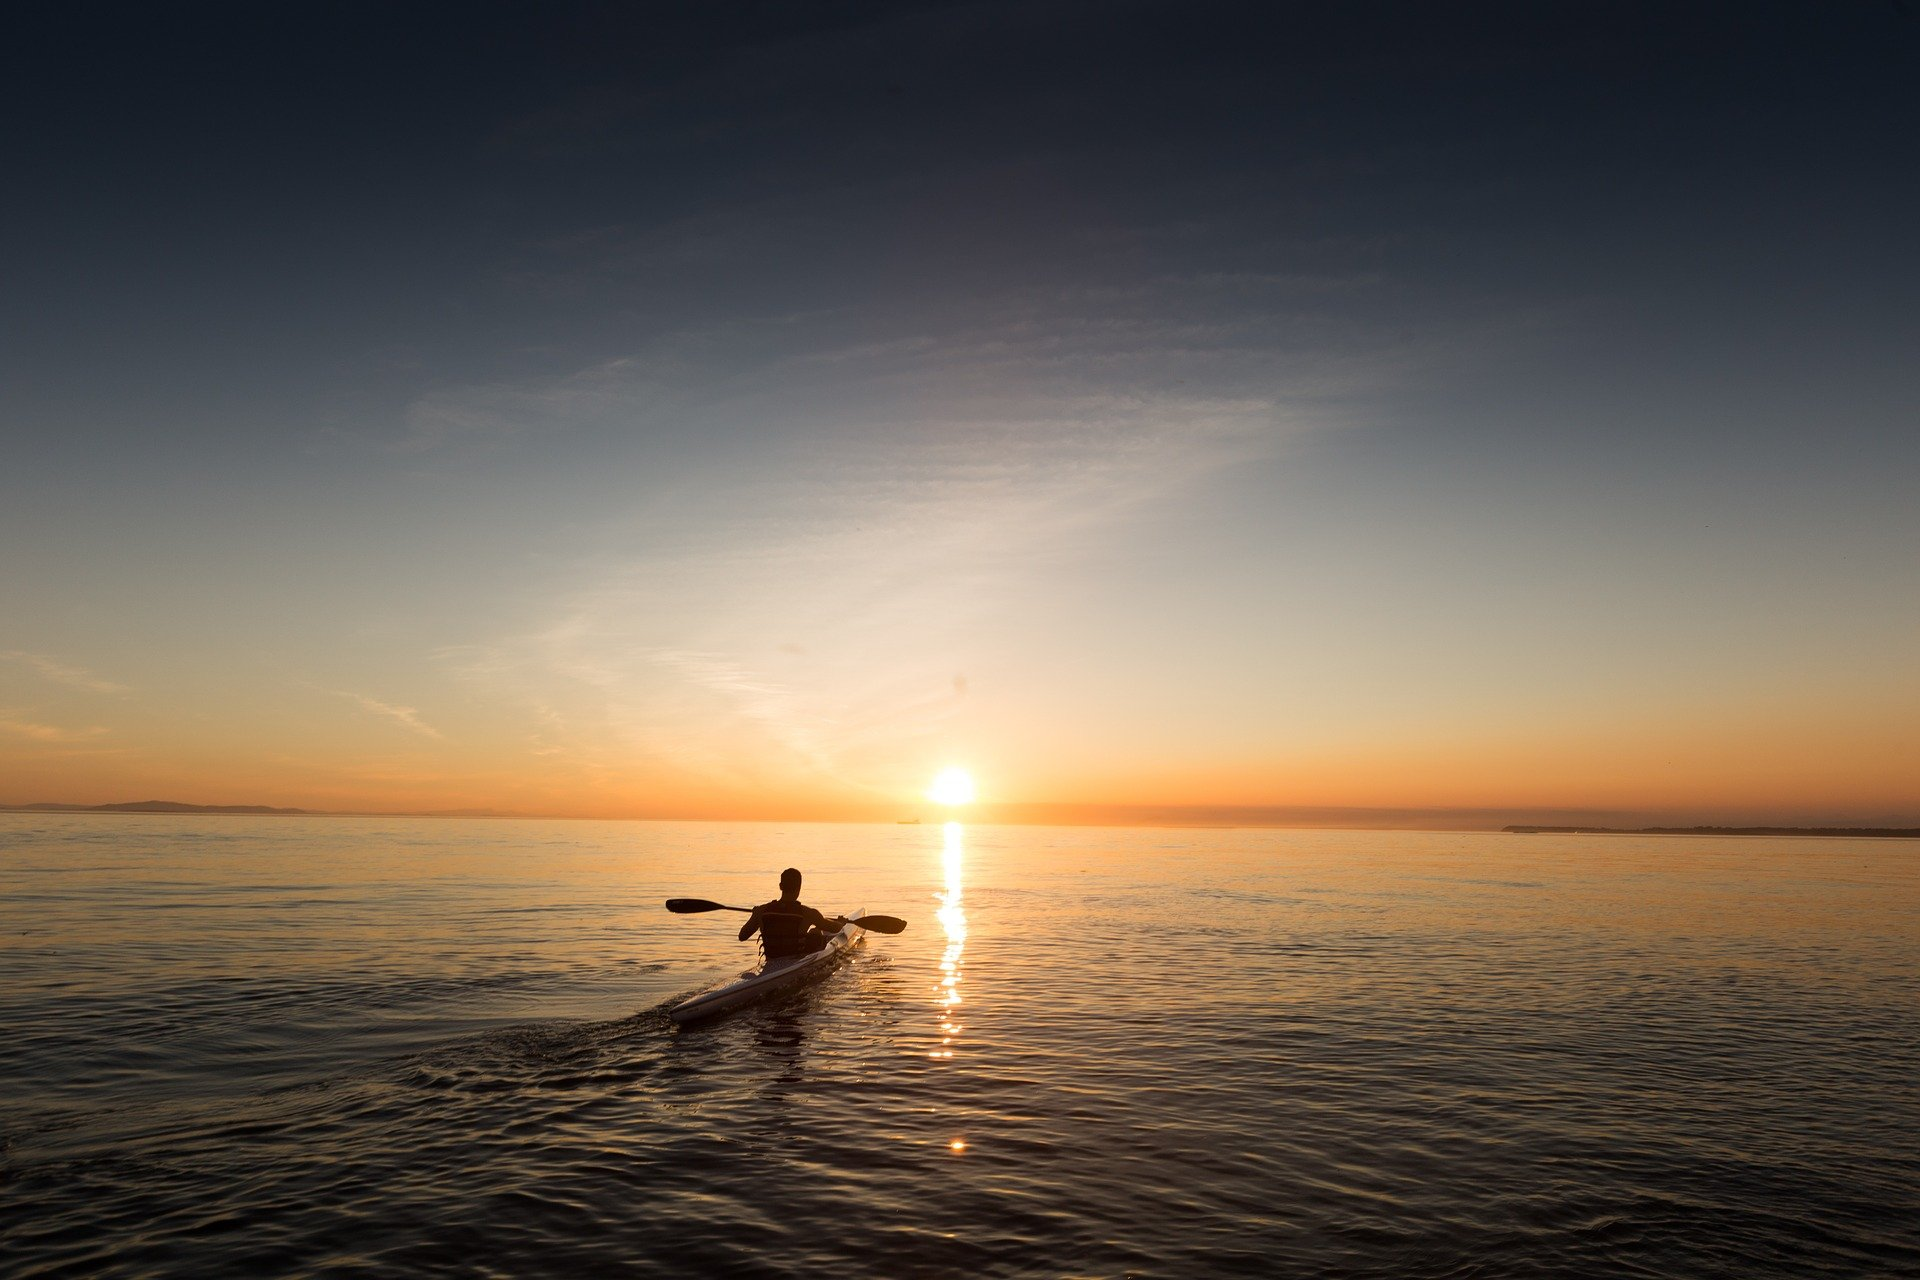 A man kayaks into the sunset.